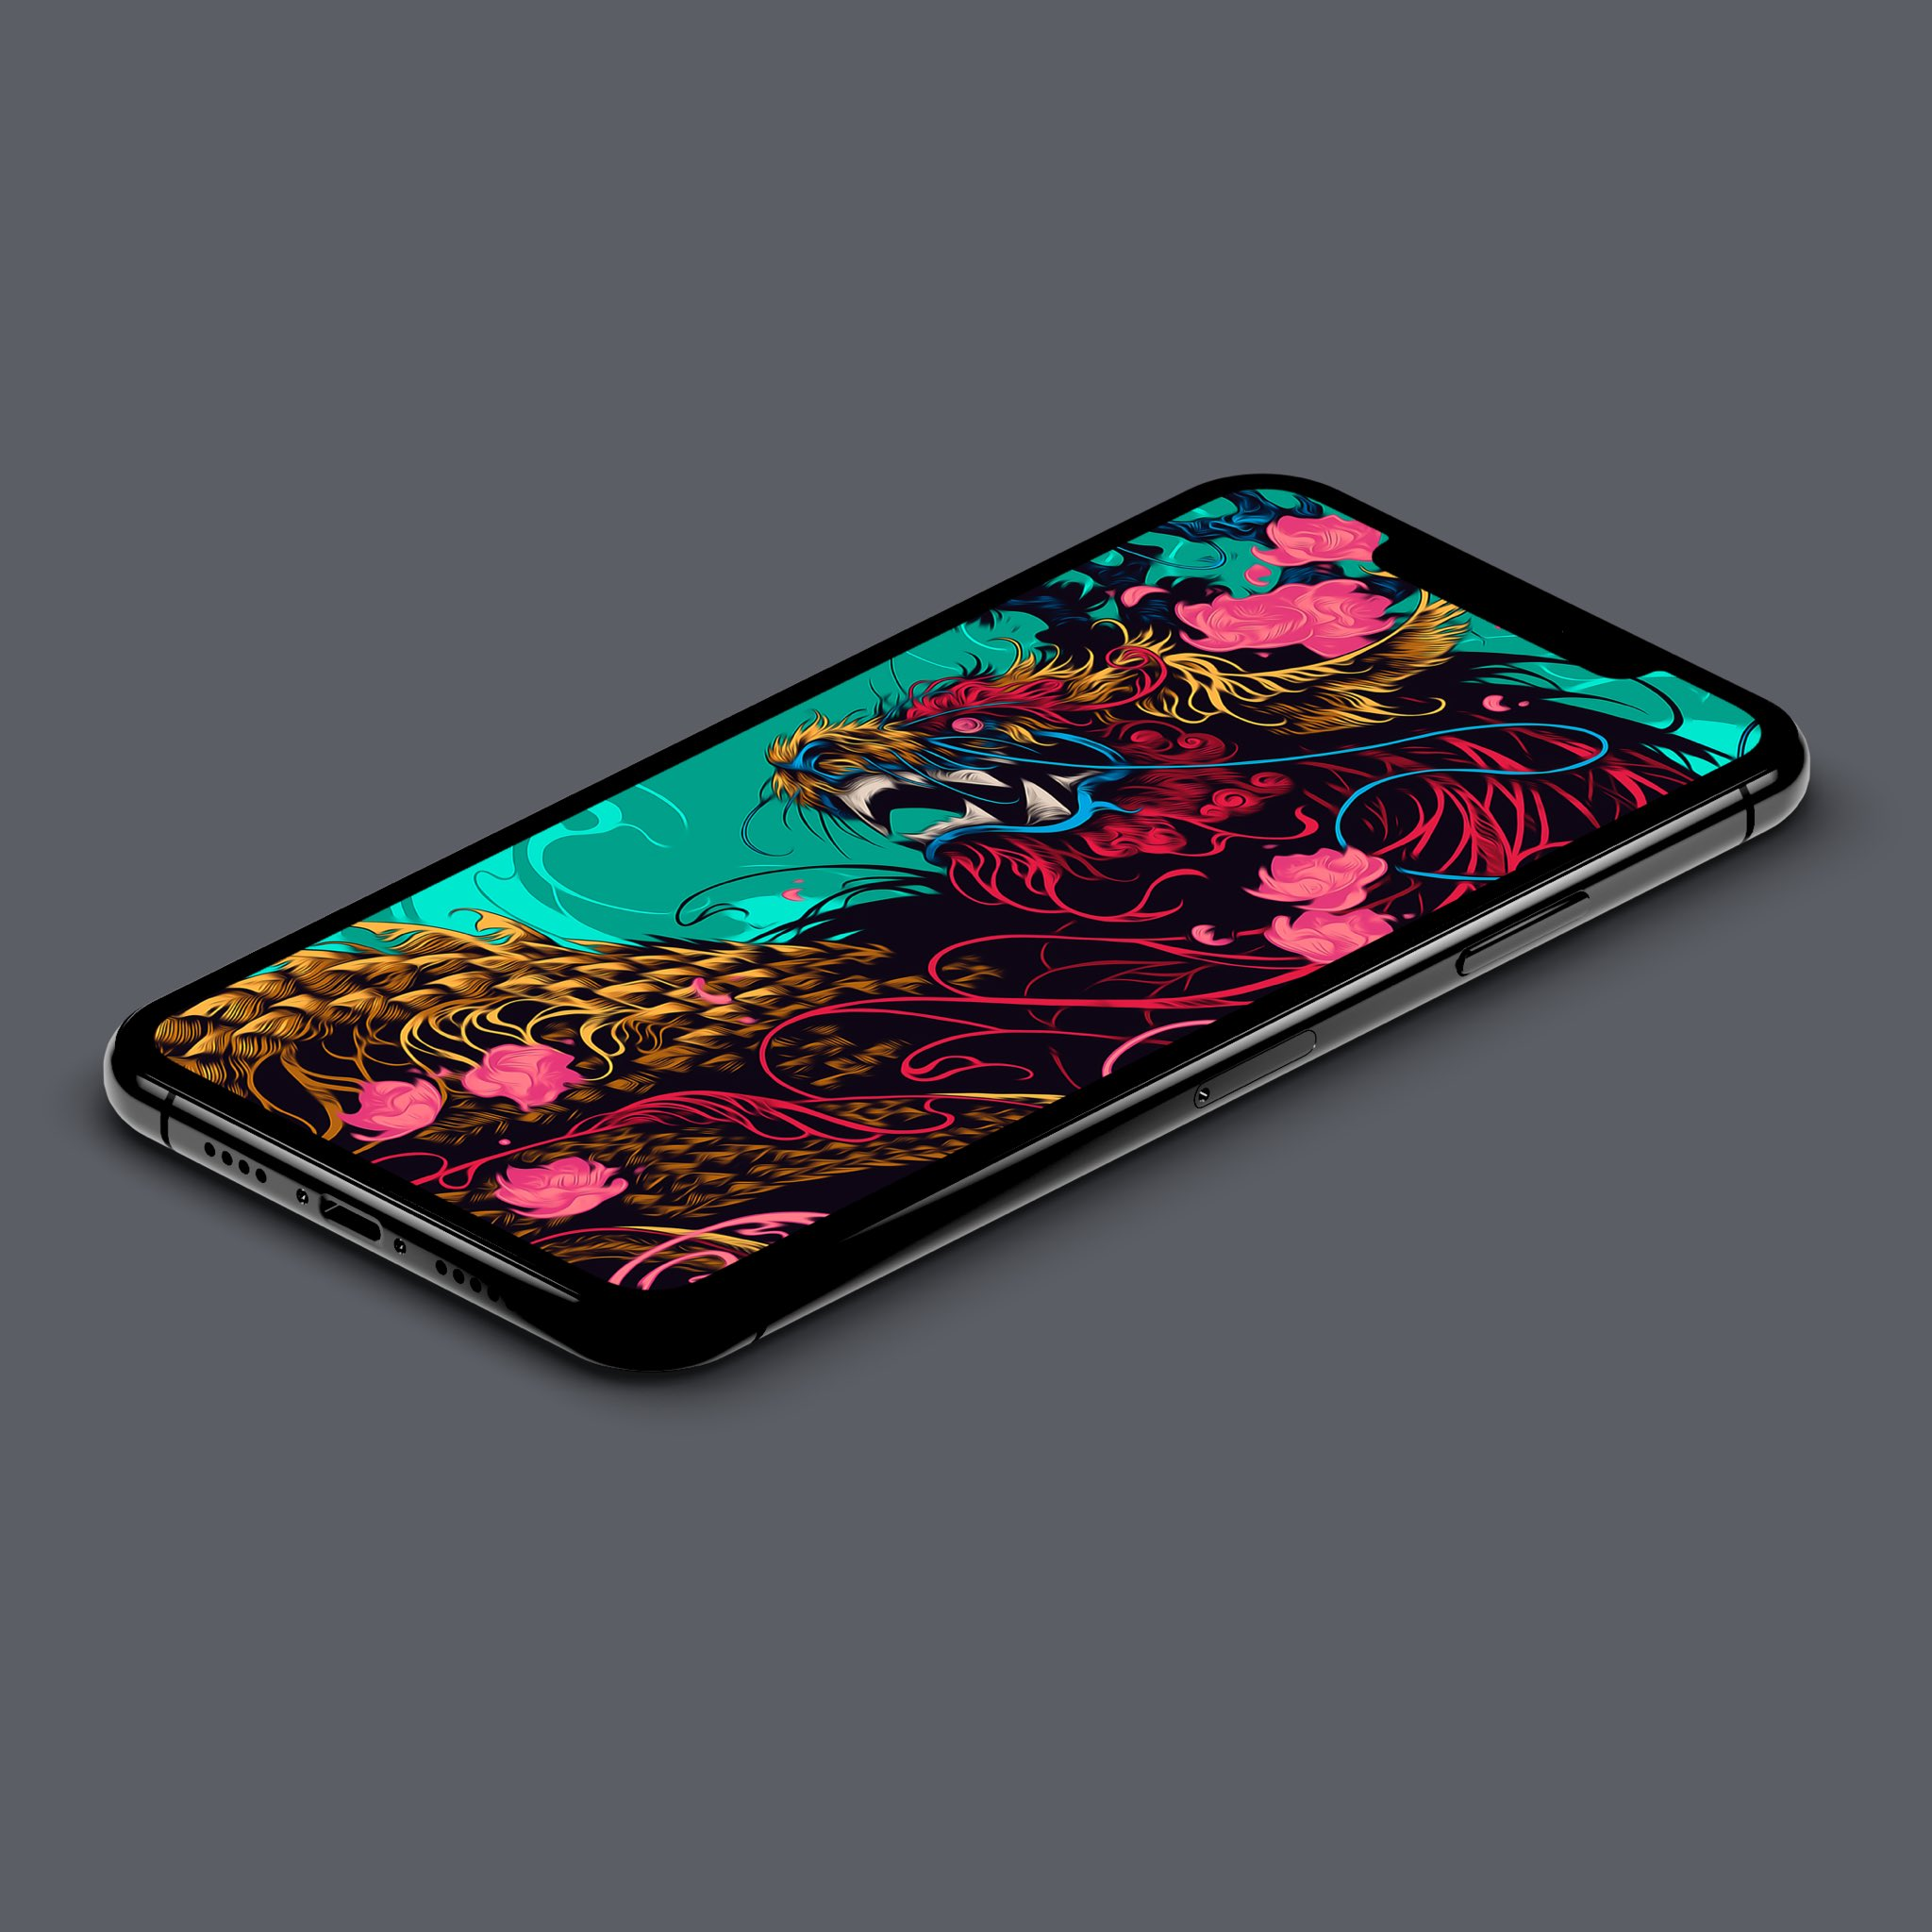 Ar7 On Twitter Wallpapers Ipadpro 2020 Promotional Wallpaper Light Effect Modd For Iphone11promax Iphone11pro Iphone11 Iphonexsmax Iphonexr Iphonexs Iphonex All Other Iphone Ipad